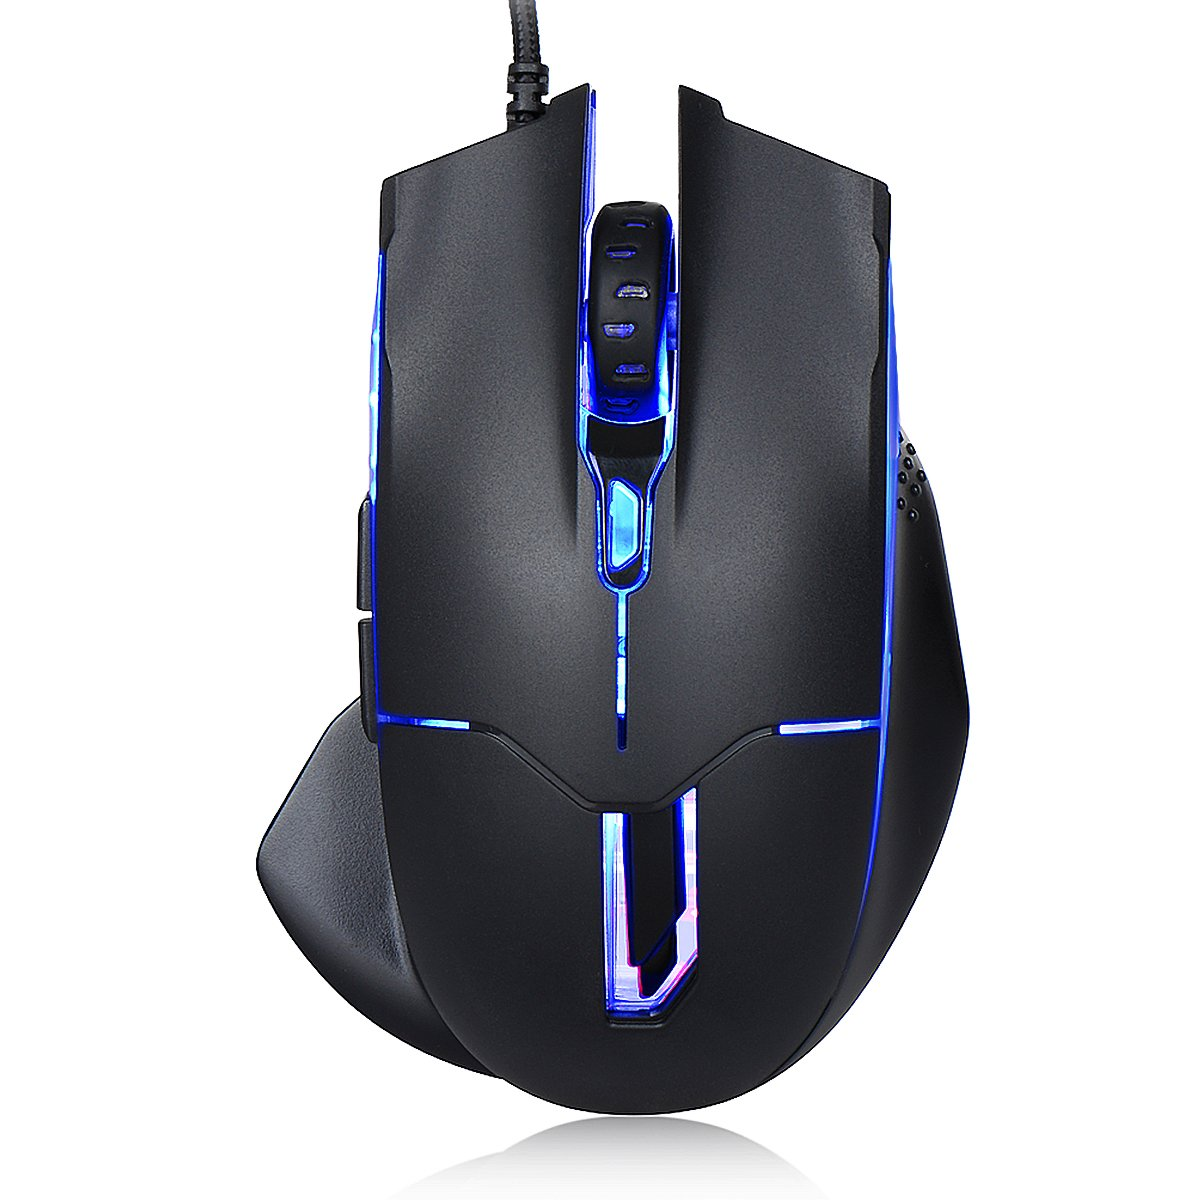 Xcords (TM) ZM700-2500DPI Optical Programmable Wired Gaming Mouse for PC/Laptop/Desktop, 7 Soothing LED Colors, 6 Buttons